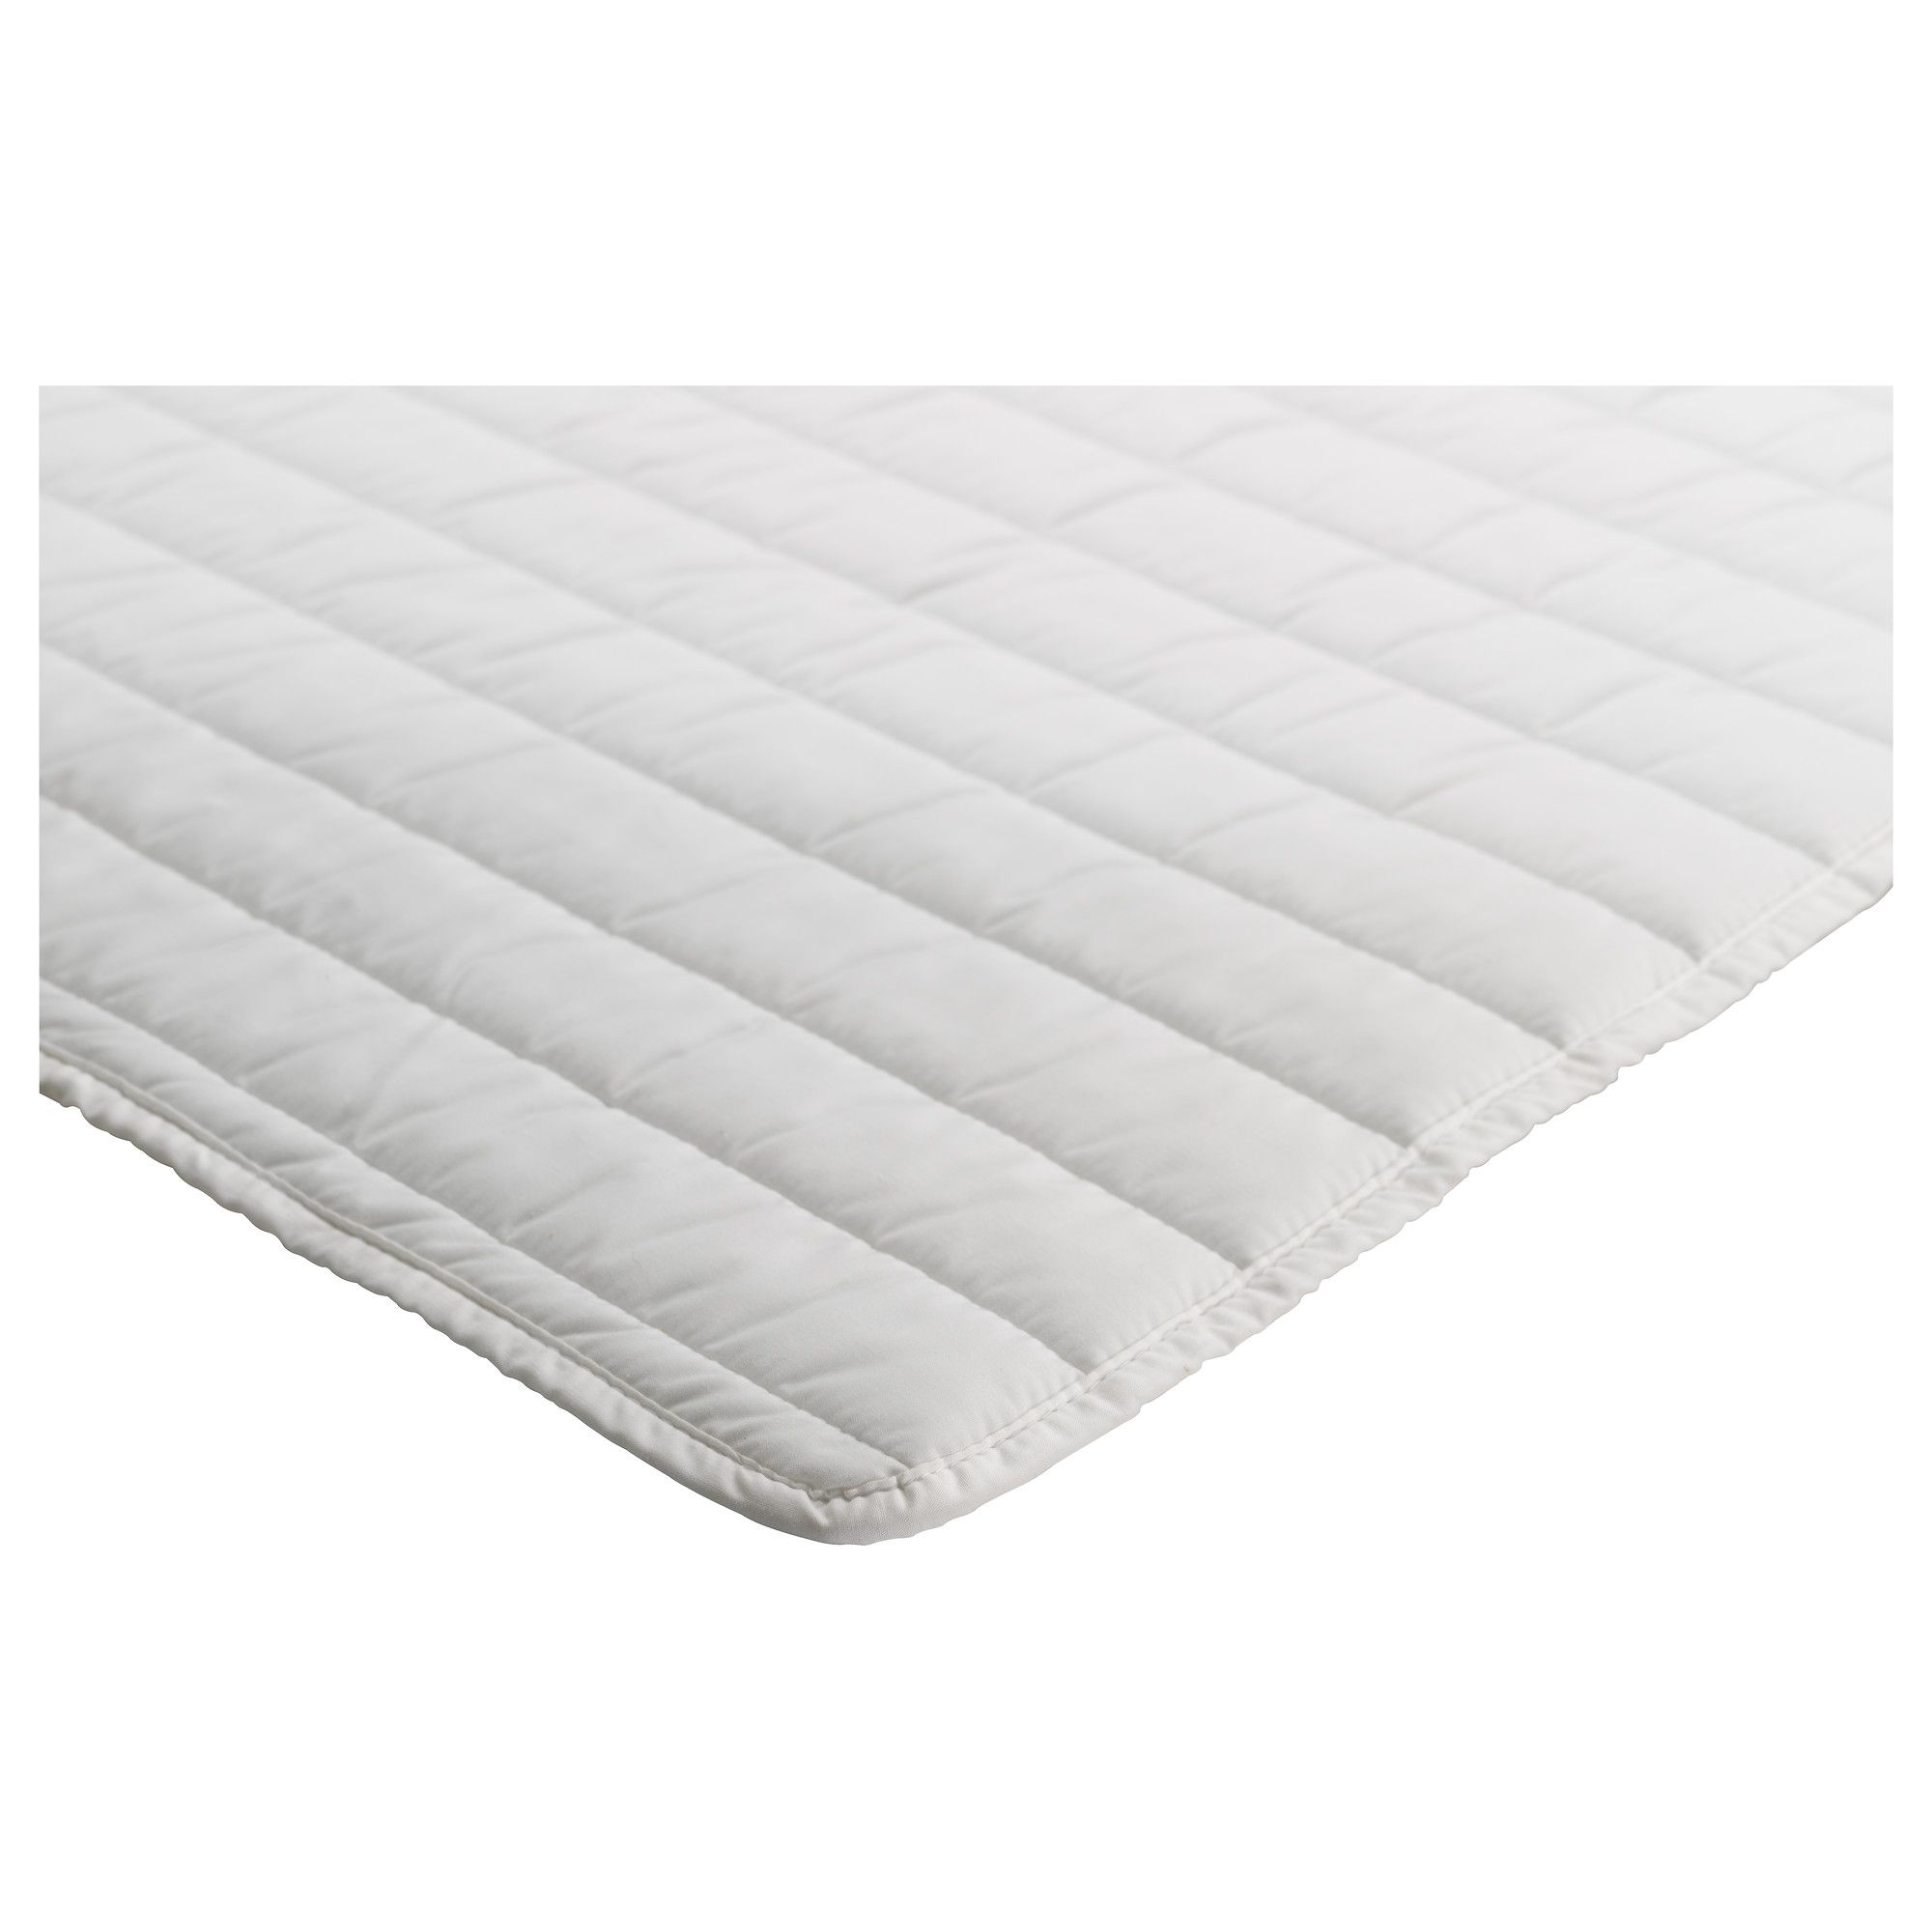 a fillings en generous gb king mattresses art layer medium soft products support sprung adds standard firm comfort mattress ikea toppers and of white pocket hyllestad